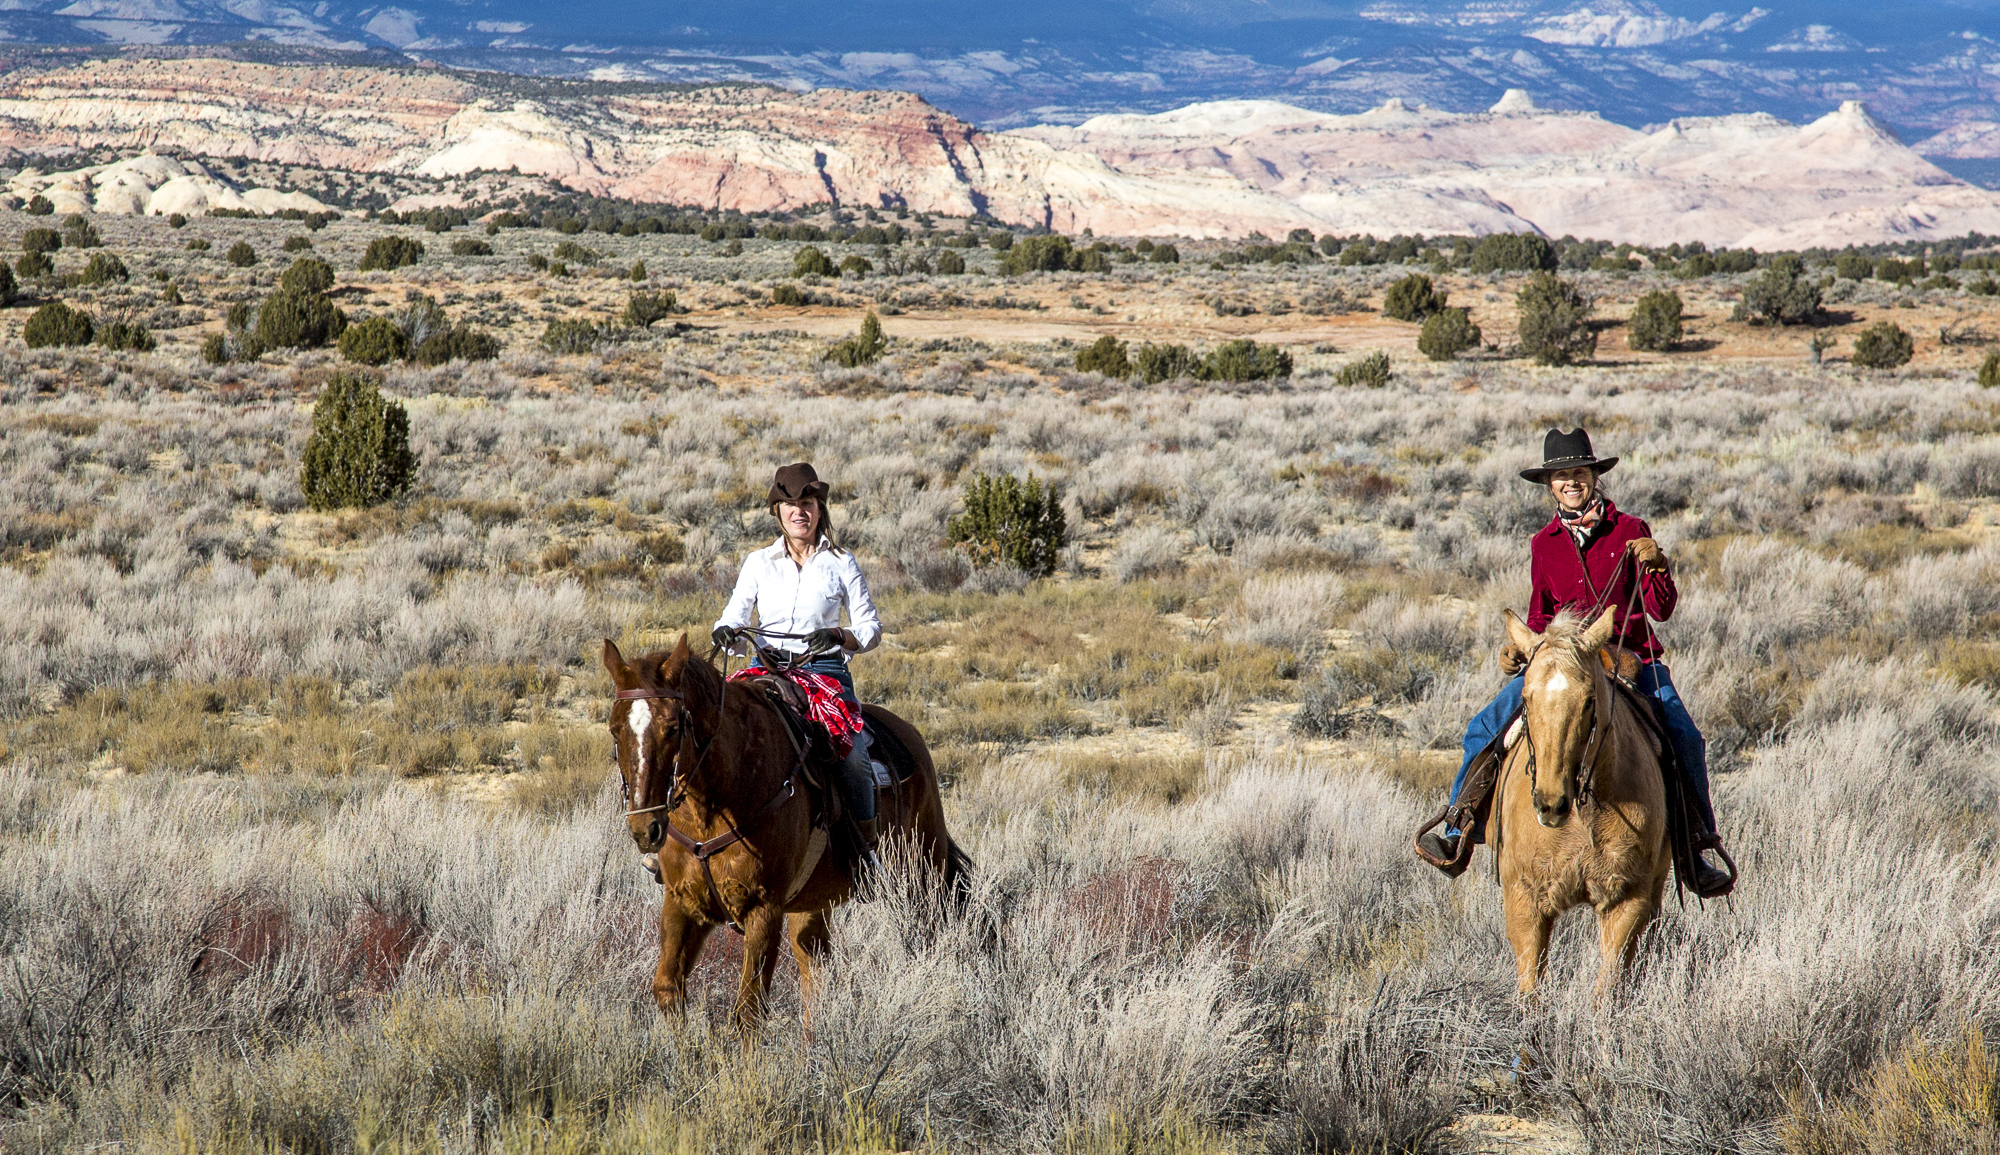 Two women ride horses through grasslands in the Grand Staircase-Escalante National Monument. Photo by Bob Wick